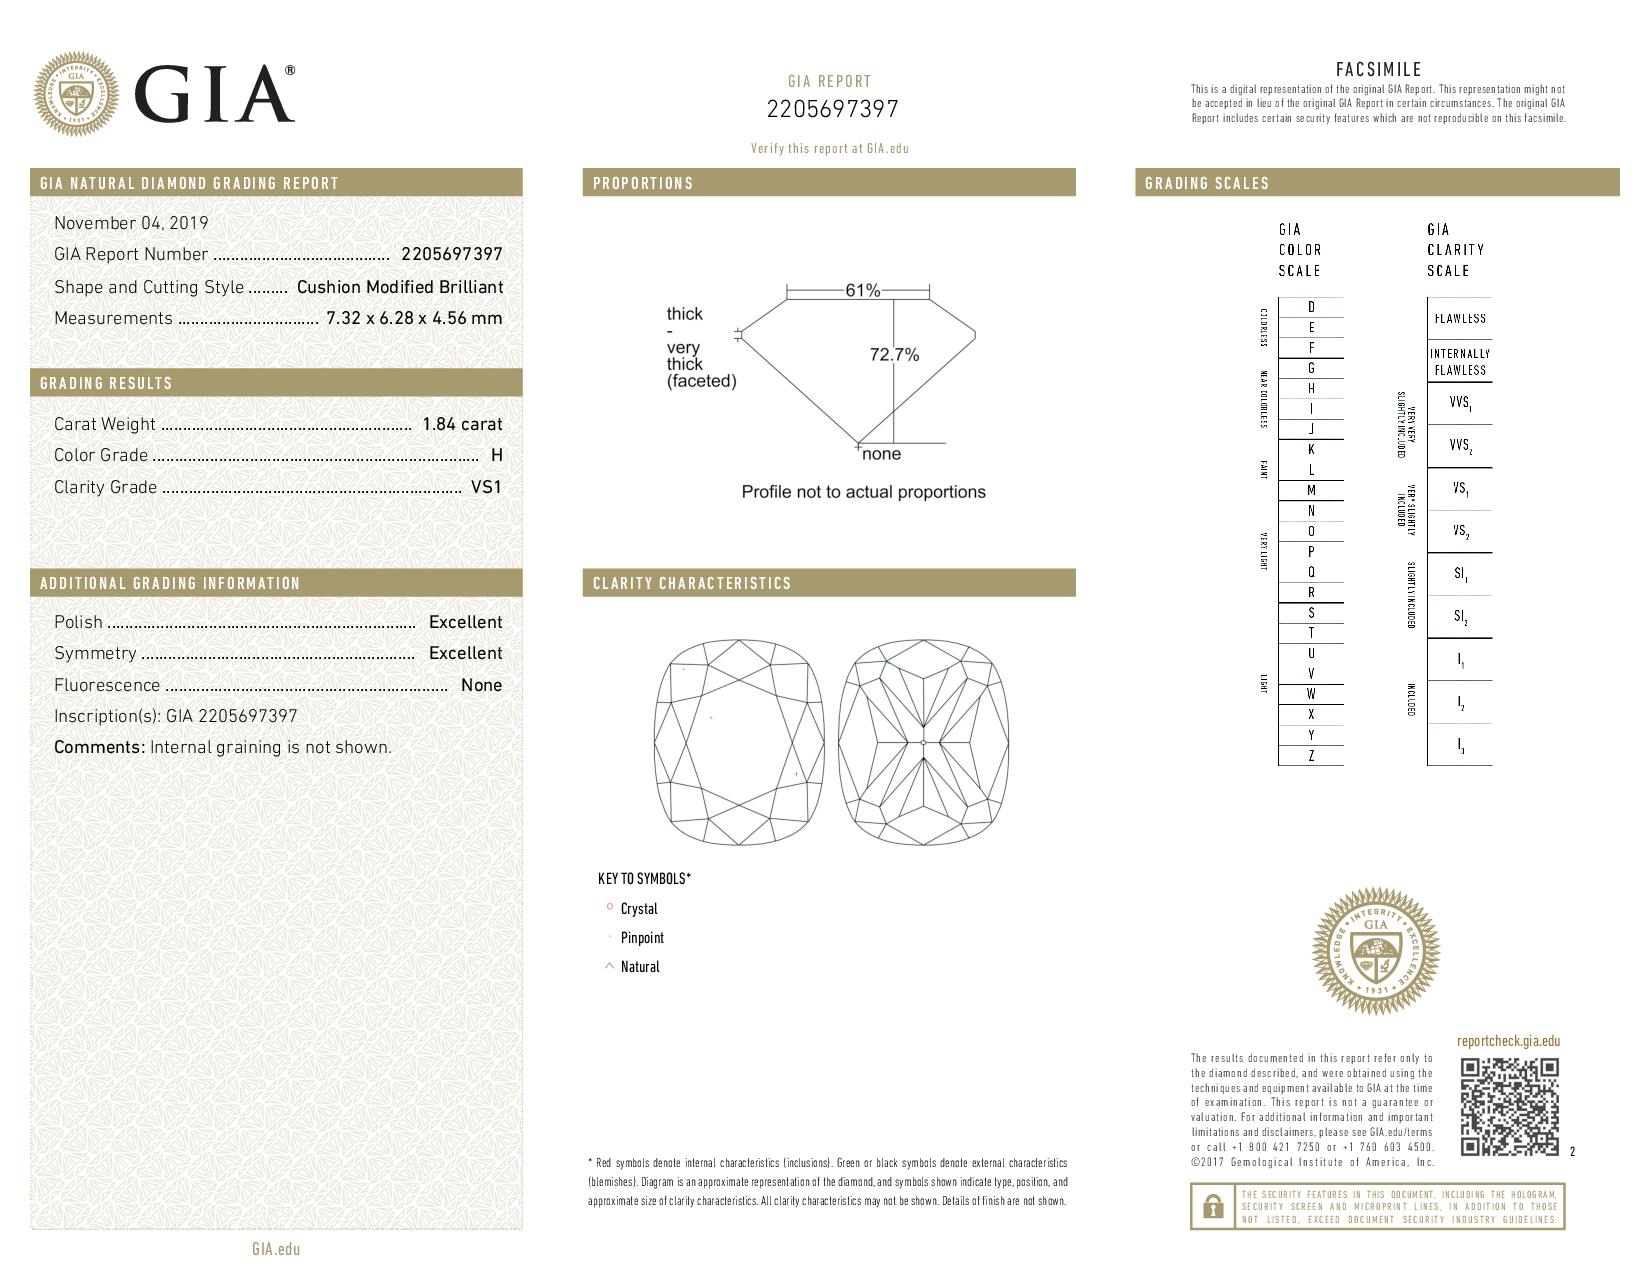 This is a 1.84 carat cushion shape, H color, VS1 clarity natural diamond accompanied by a GIA grading report.